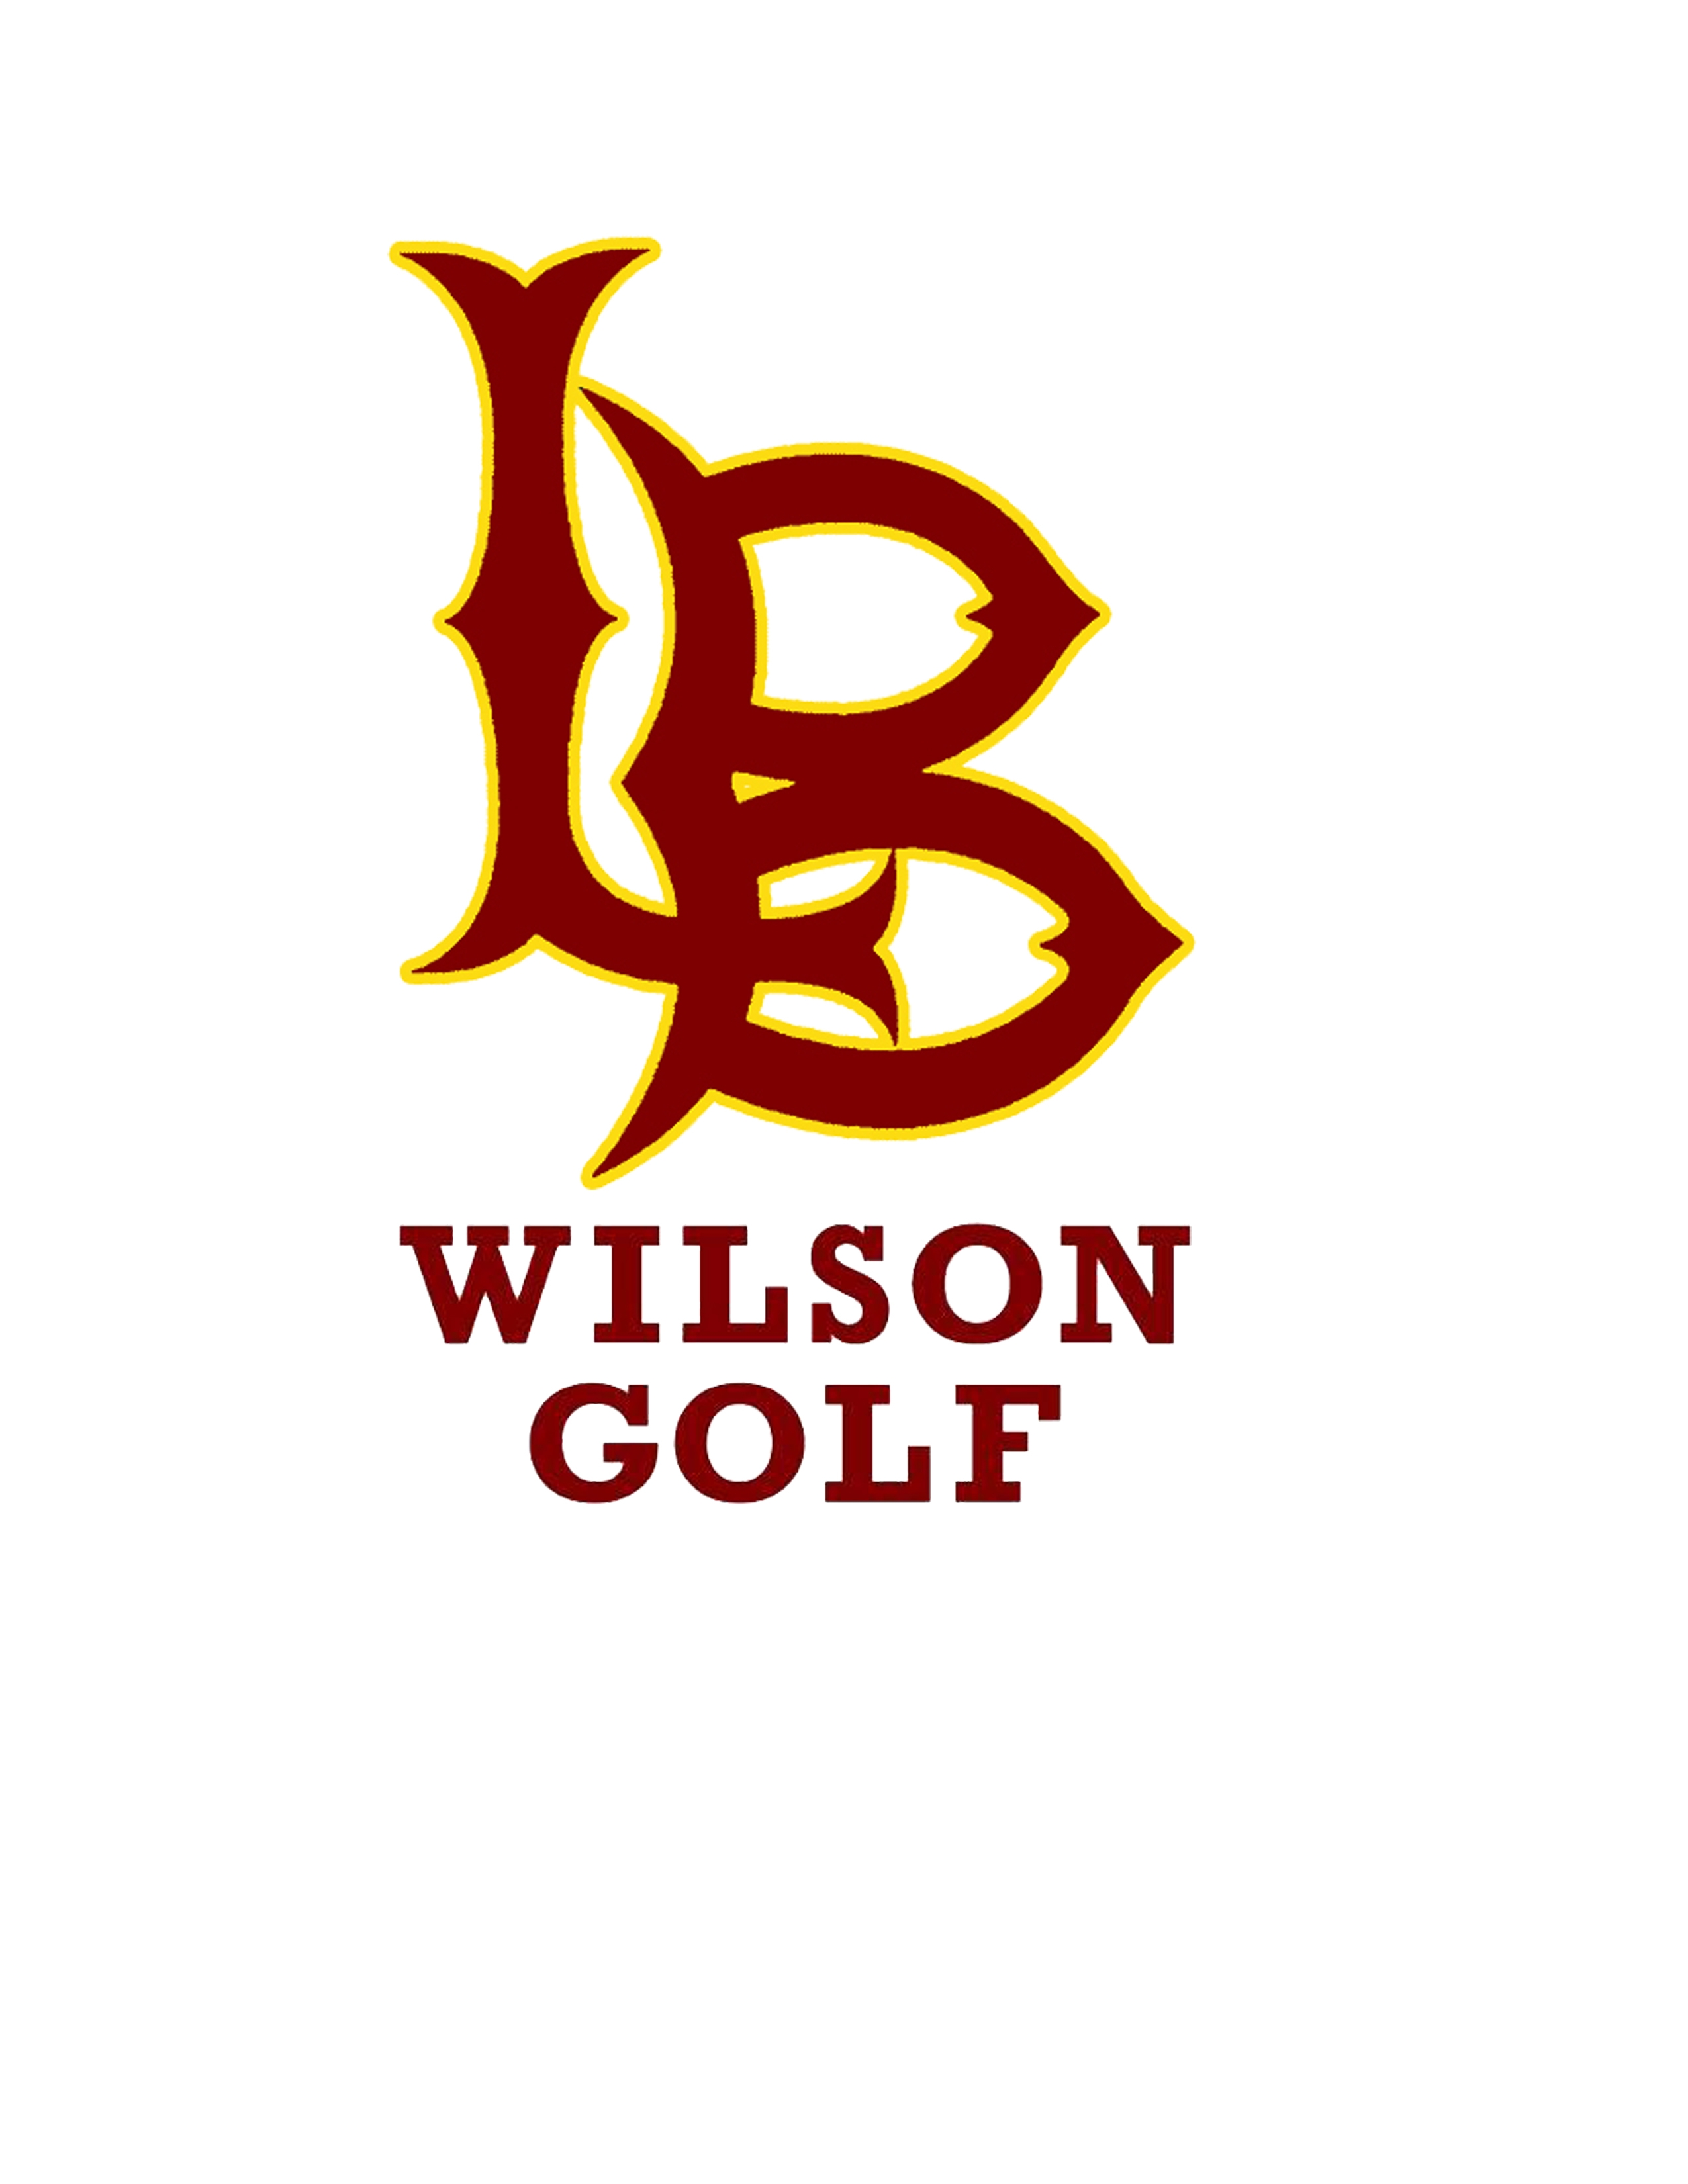 Wilson Golf- Logo template.JPG